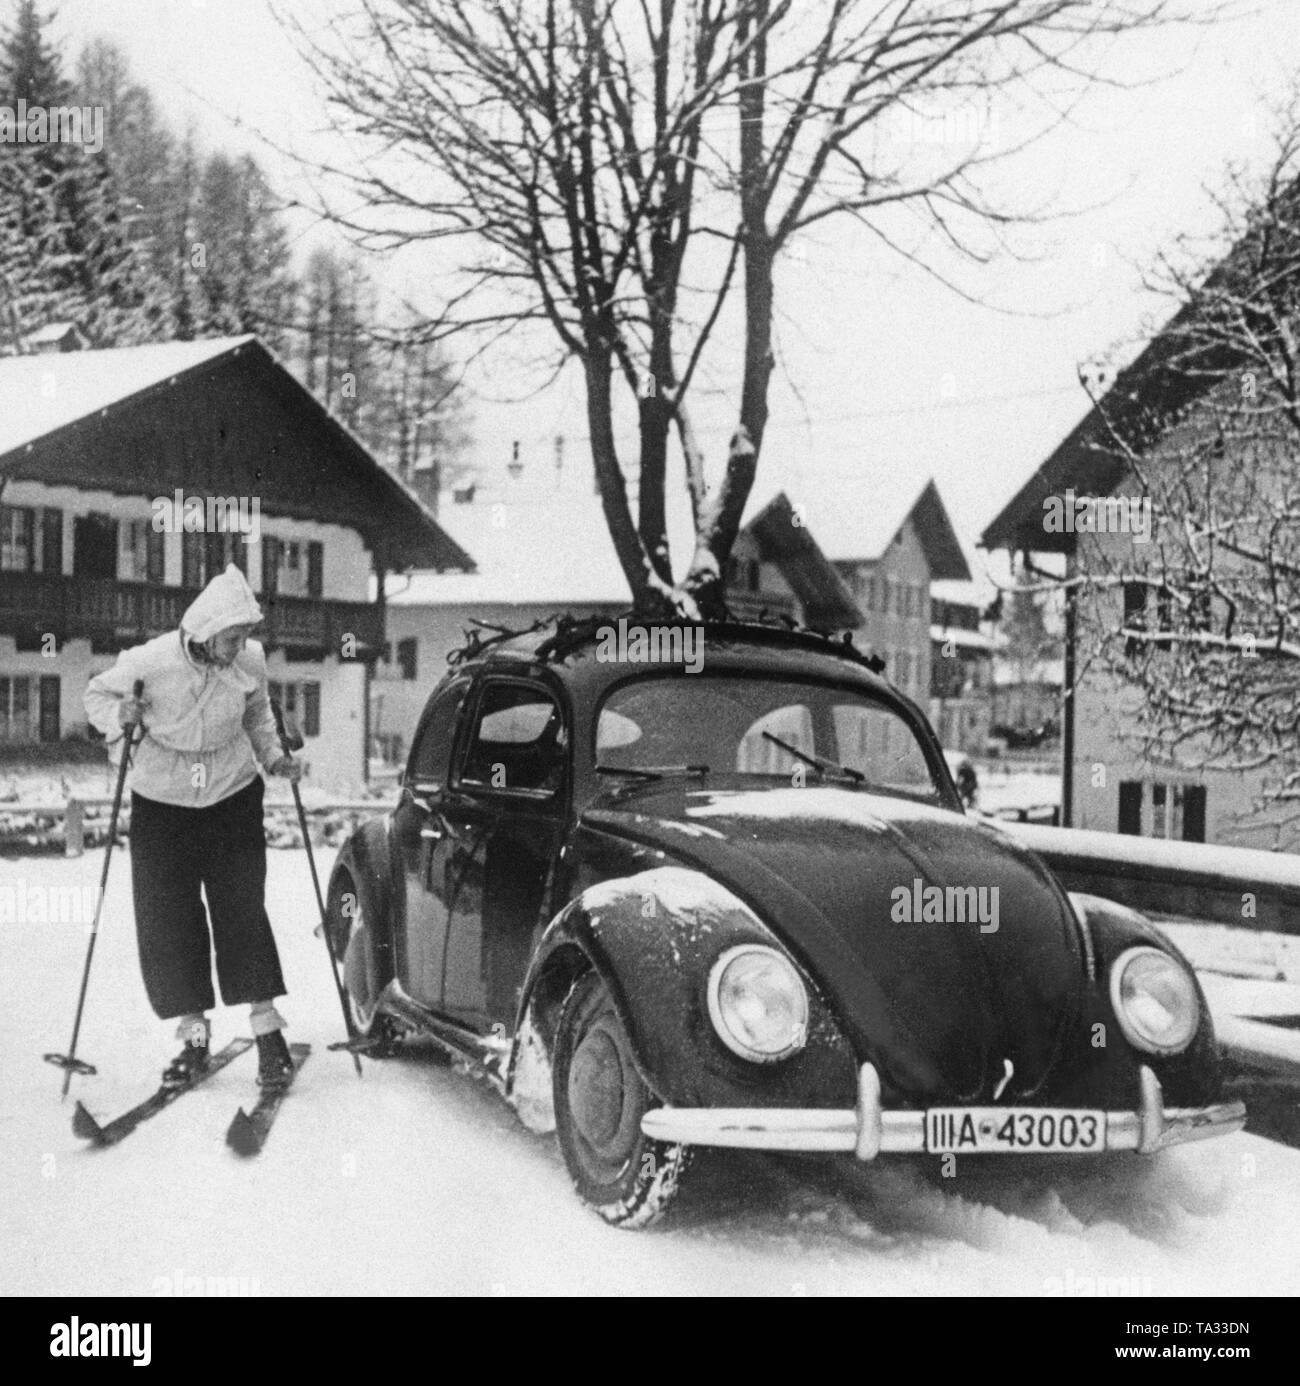 A VW Beetle, then called 'KdF-Wagen', in the winter of 1938/39 in a Bavarian ski resort - Stock Image